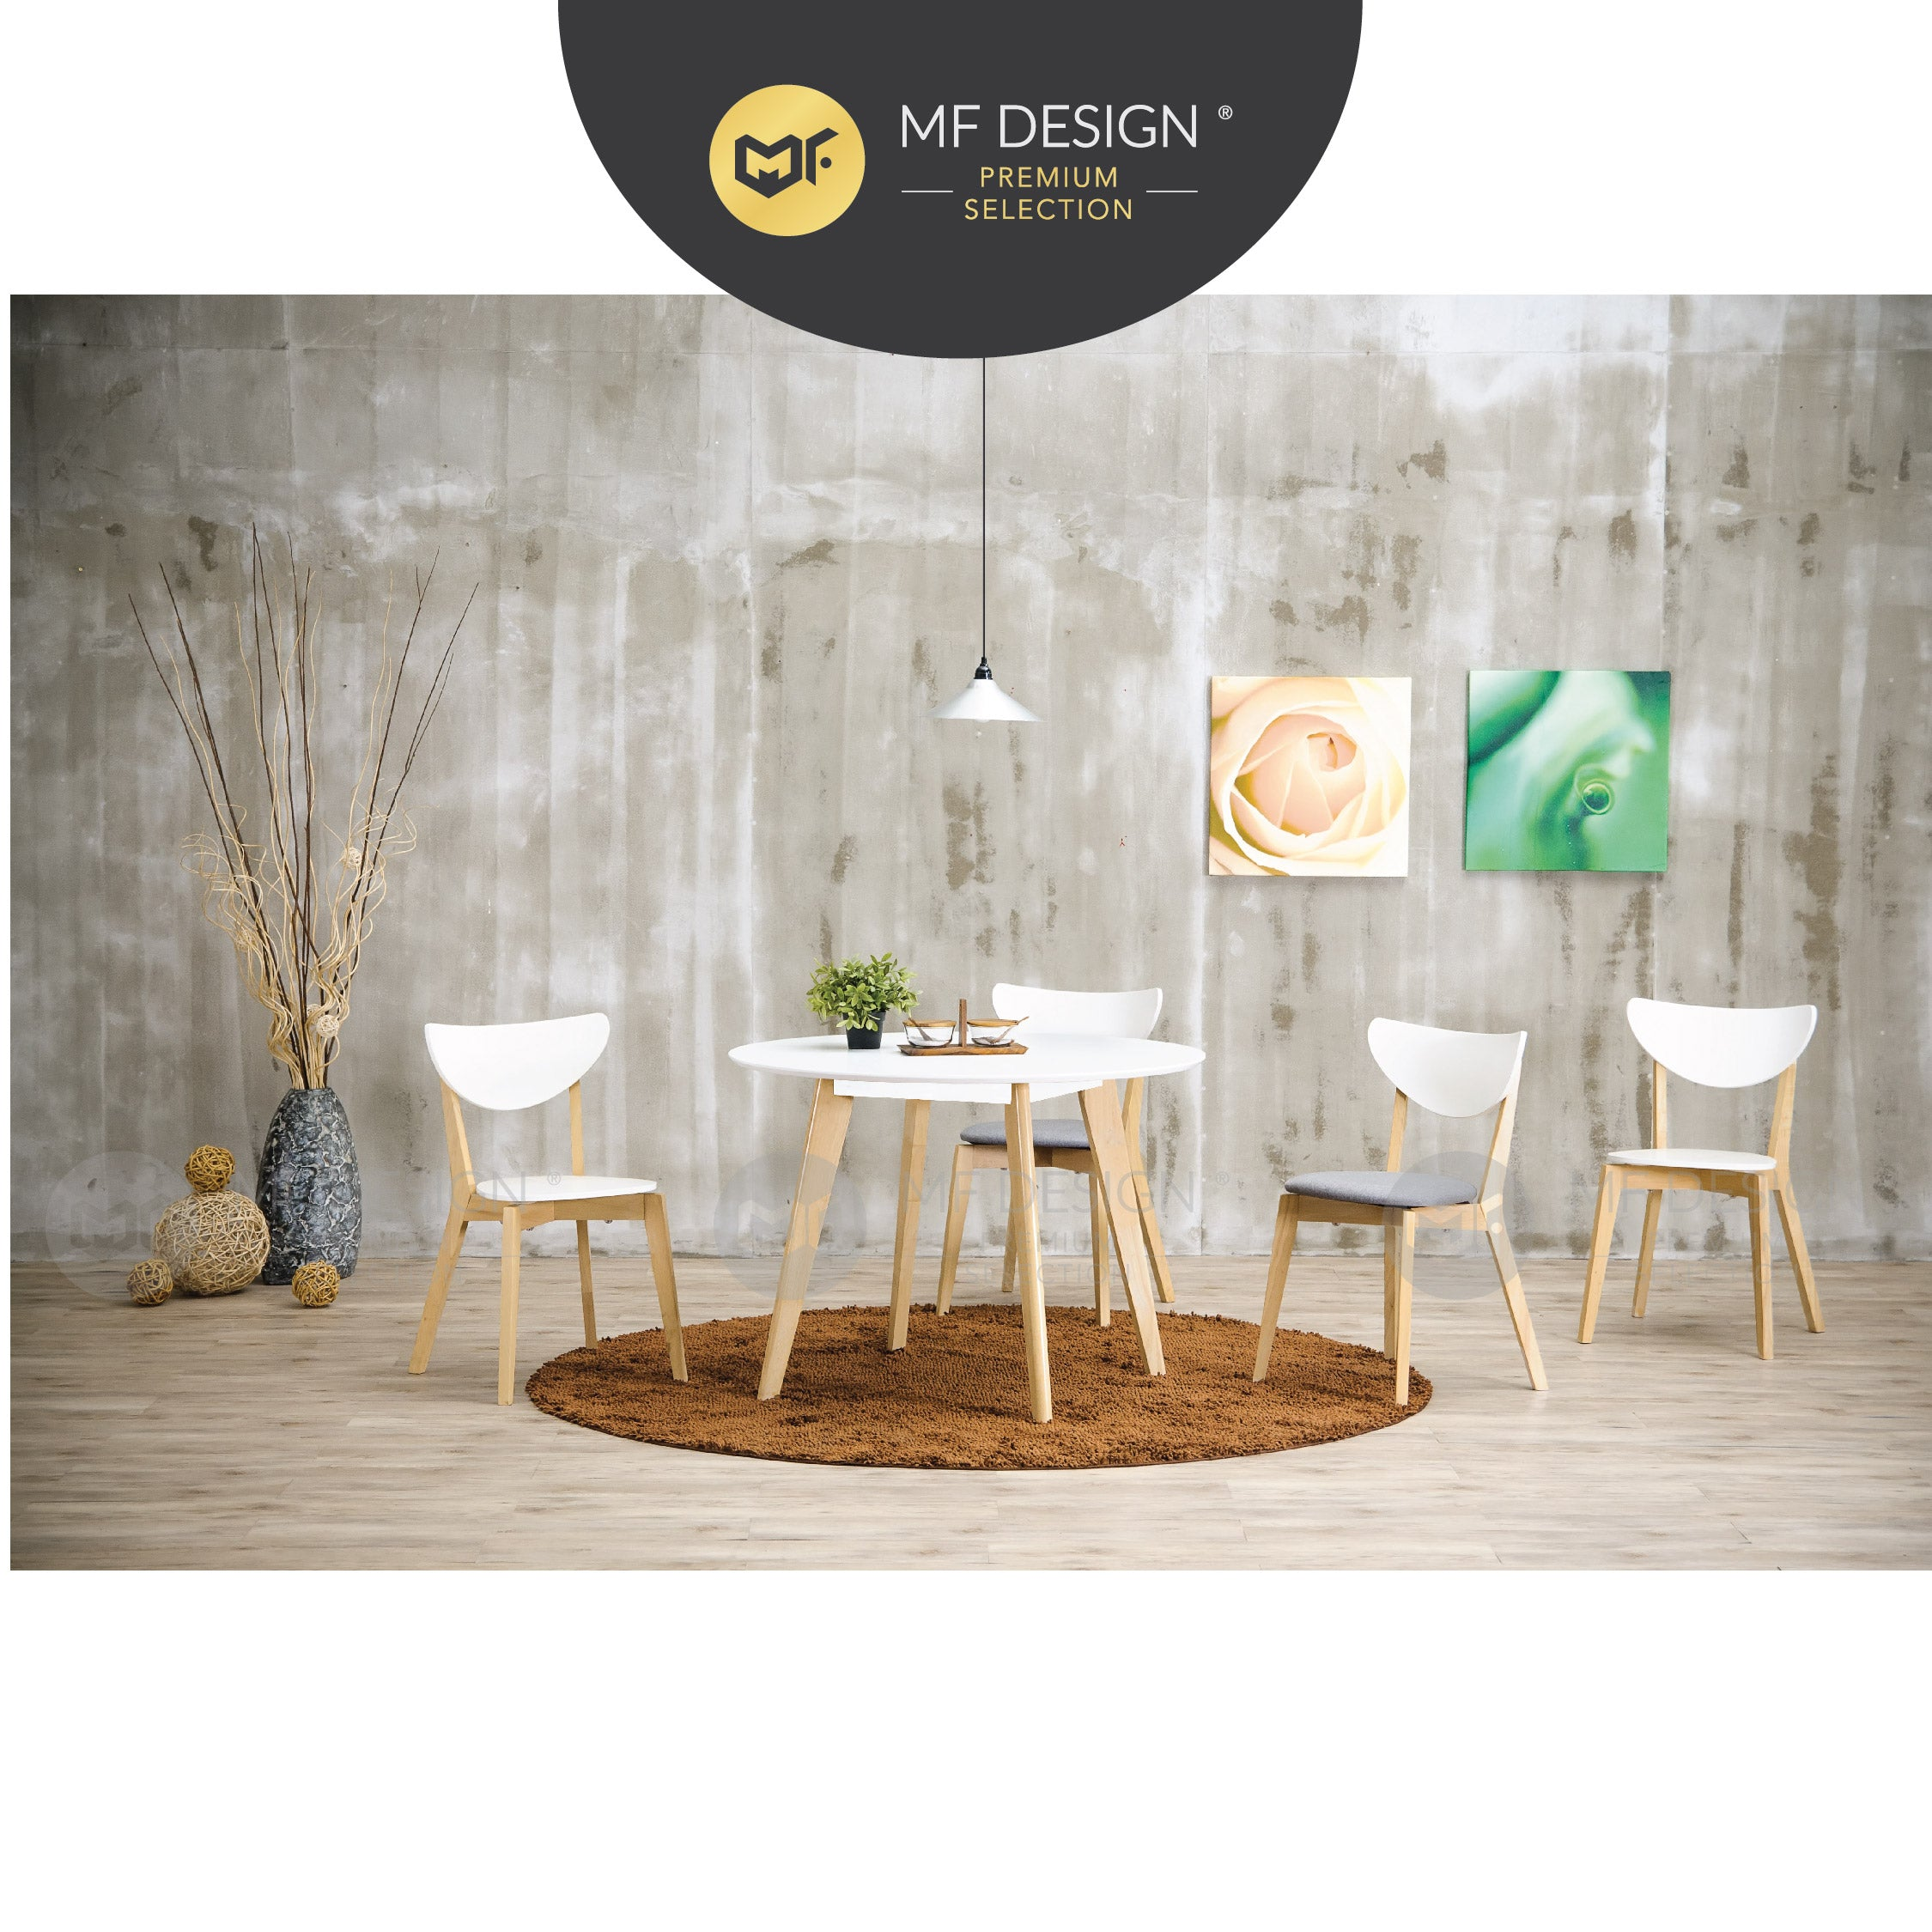 MFD Premium Nancy Dining Chair / Wooden Chair / Solid Rubber Wood / Kerusi Makan Kayu Getah / Living Room / Scandinavian